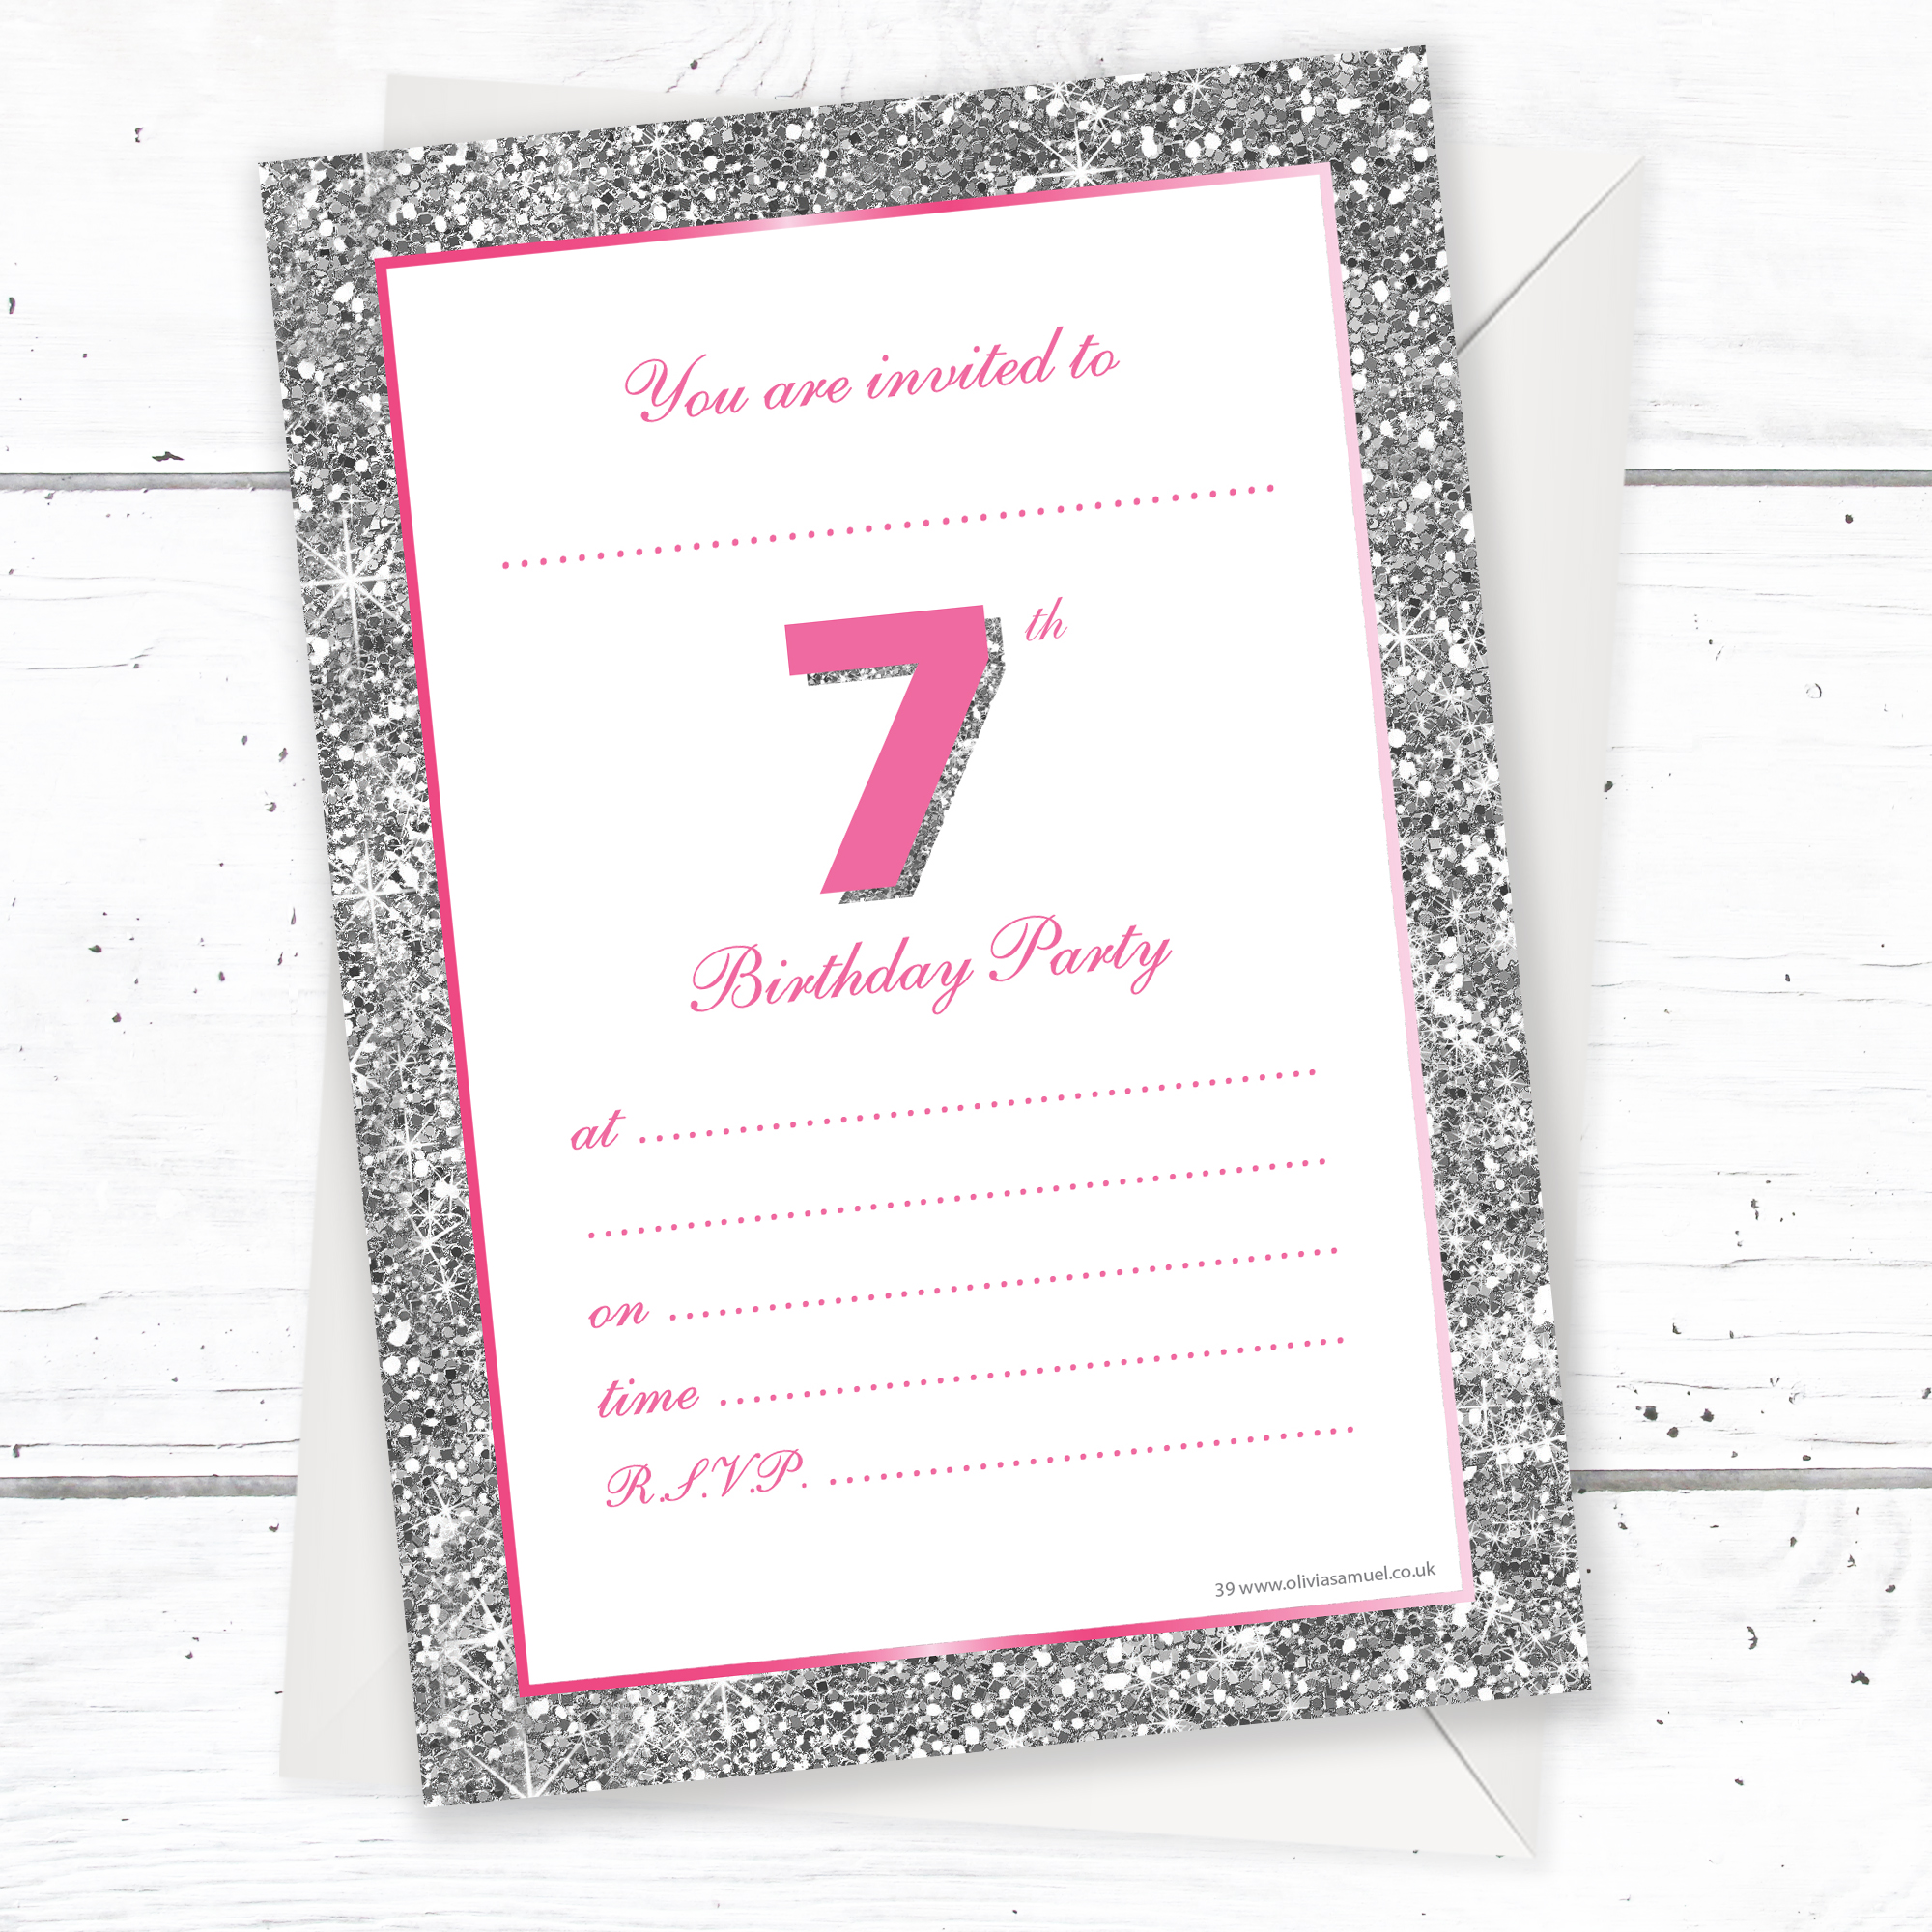 7th Birthday Party Invitations – Pink Sparkly Design and Photo ...